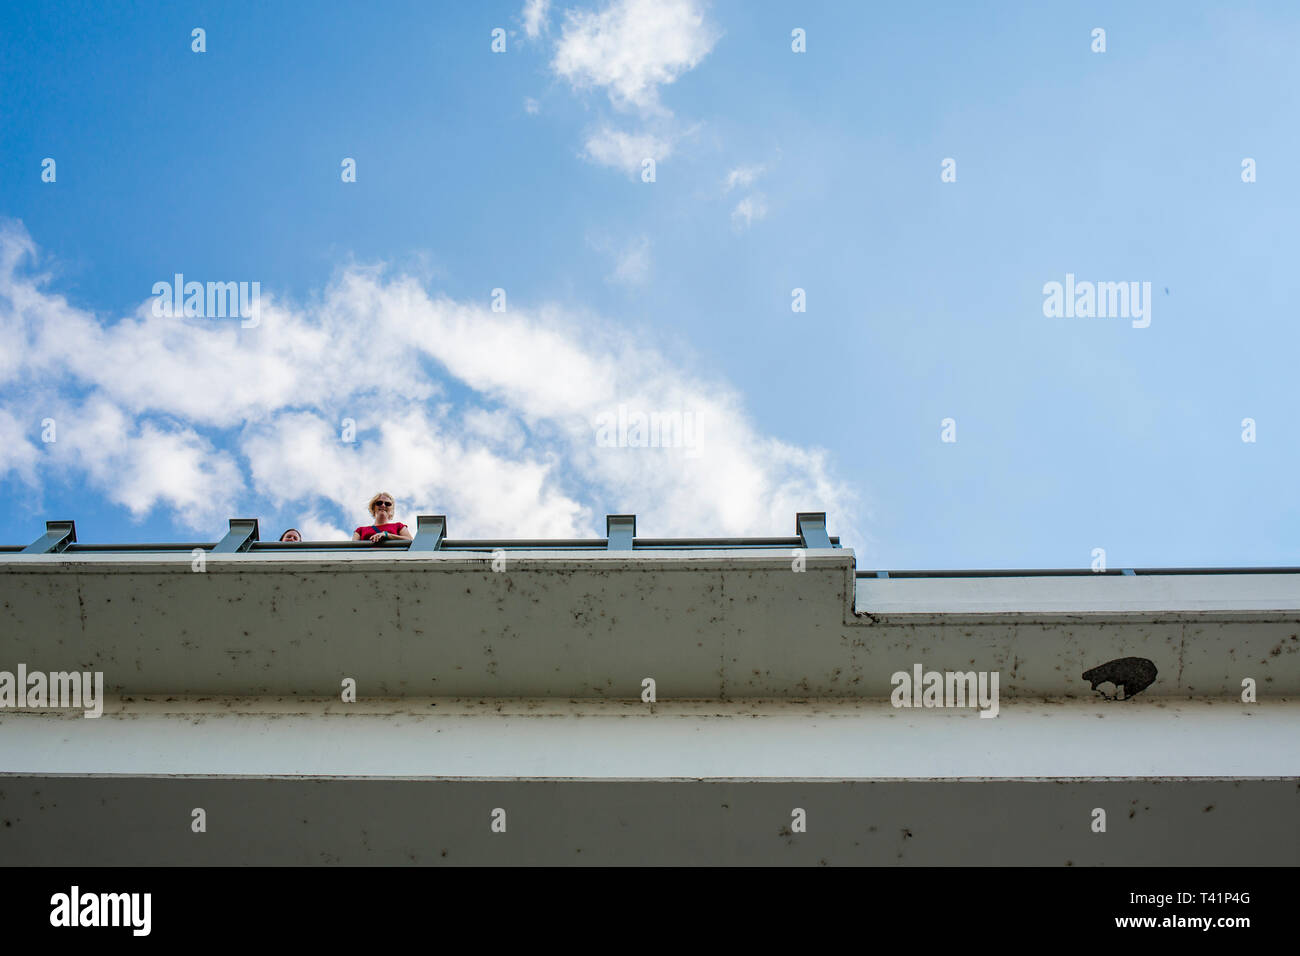 a view from below of blue sky and two people peering over a bridge - Stock Image